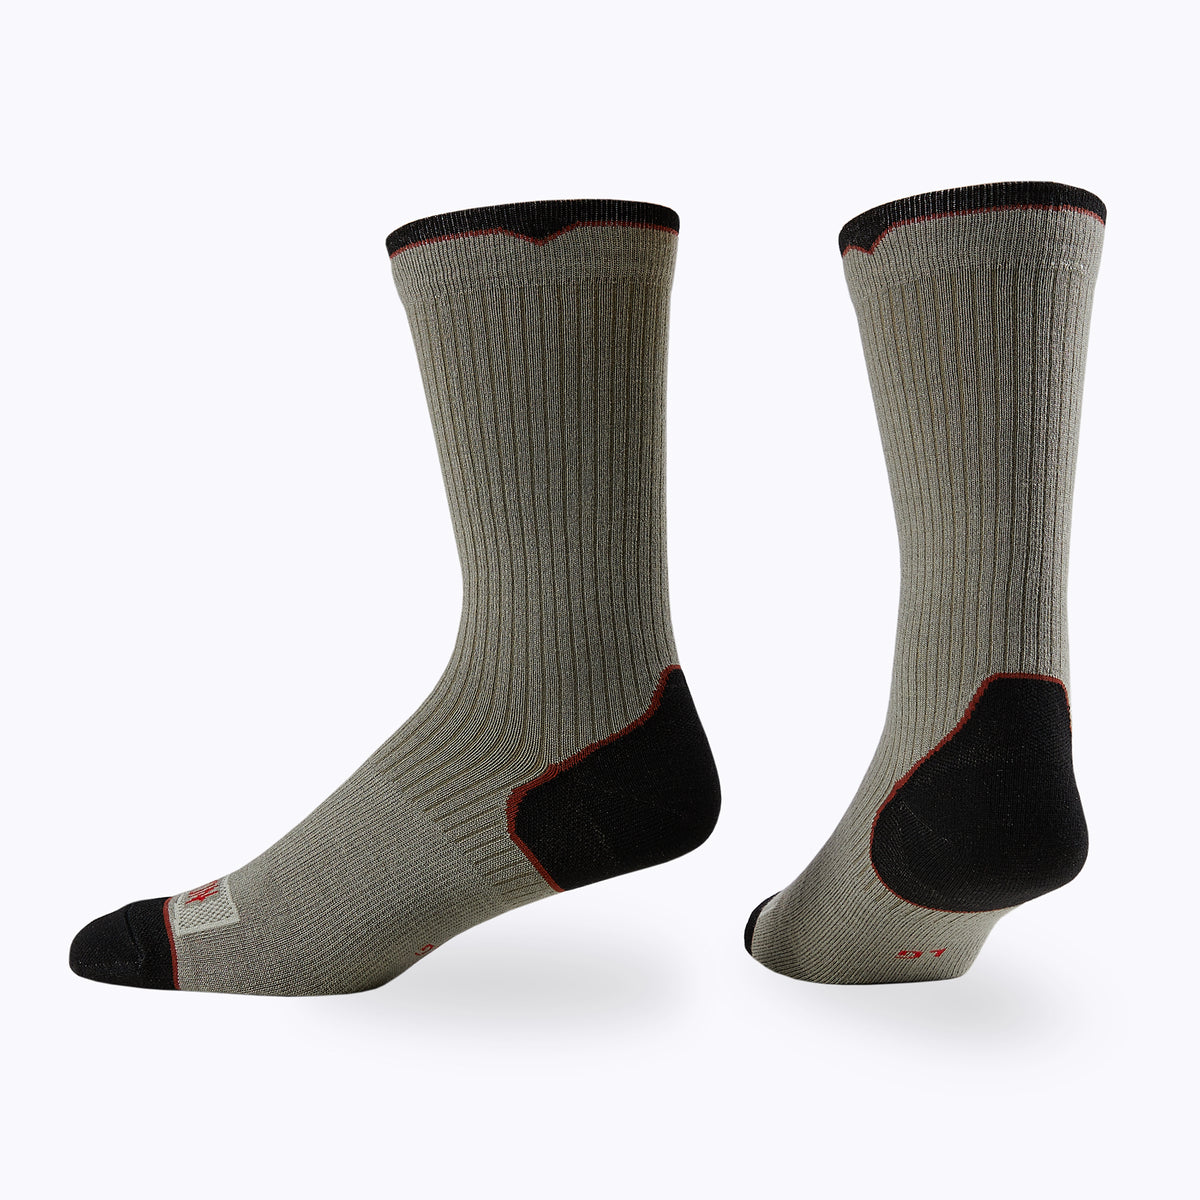 Essential 3 Pack Men's Crew Socks -  by Canyon Socks